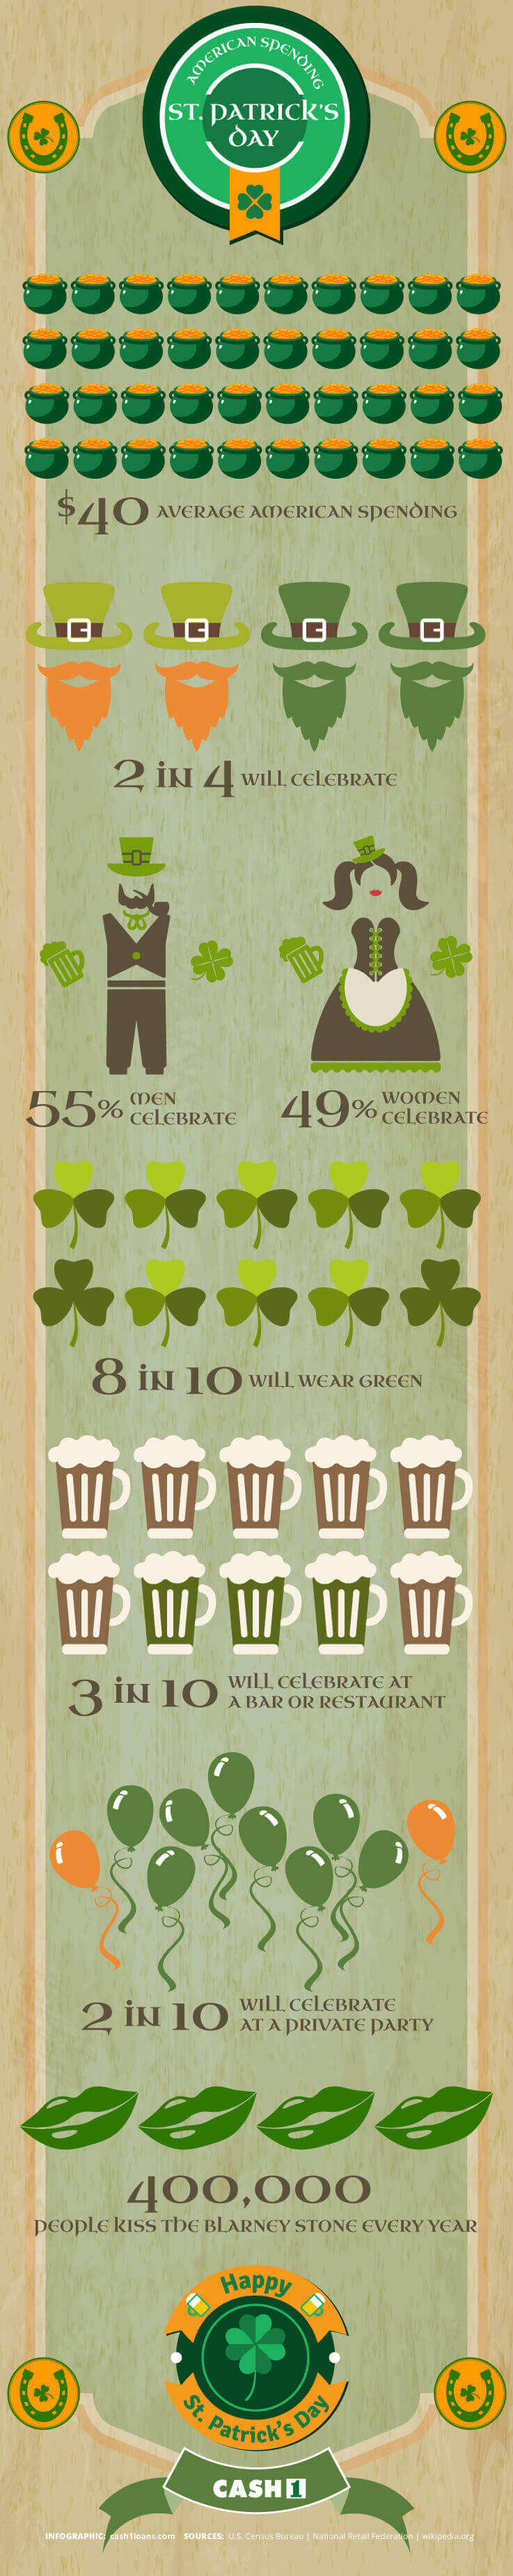 What Americans Spend During St. Patrick's Day